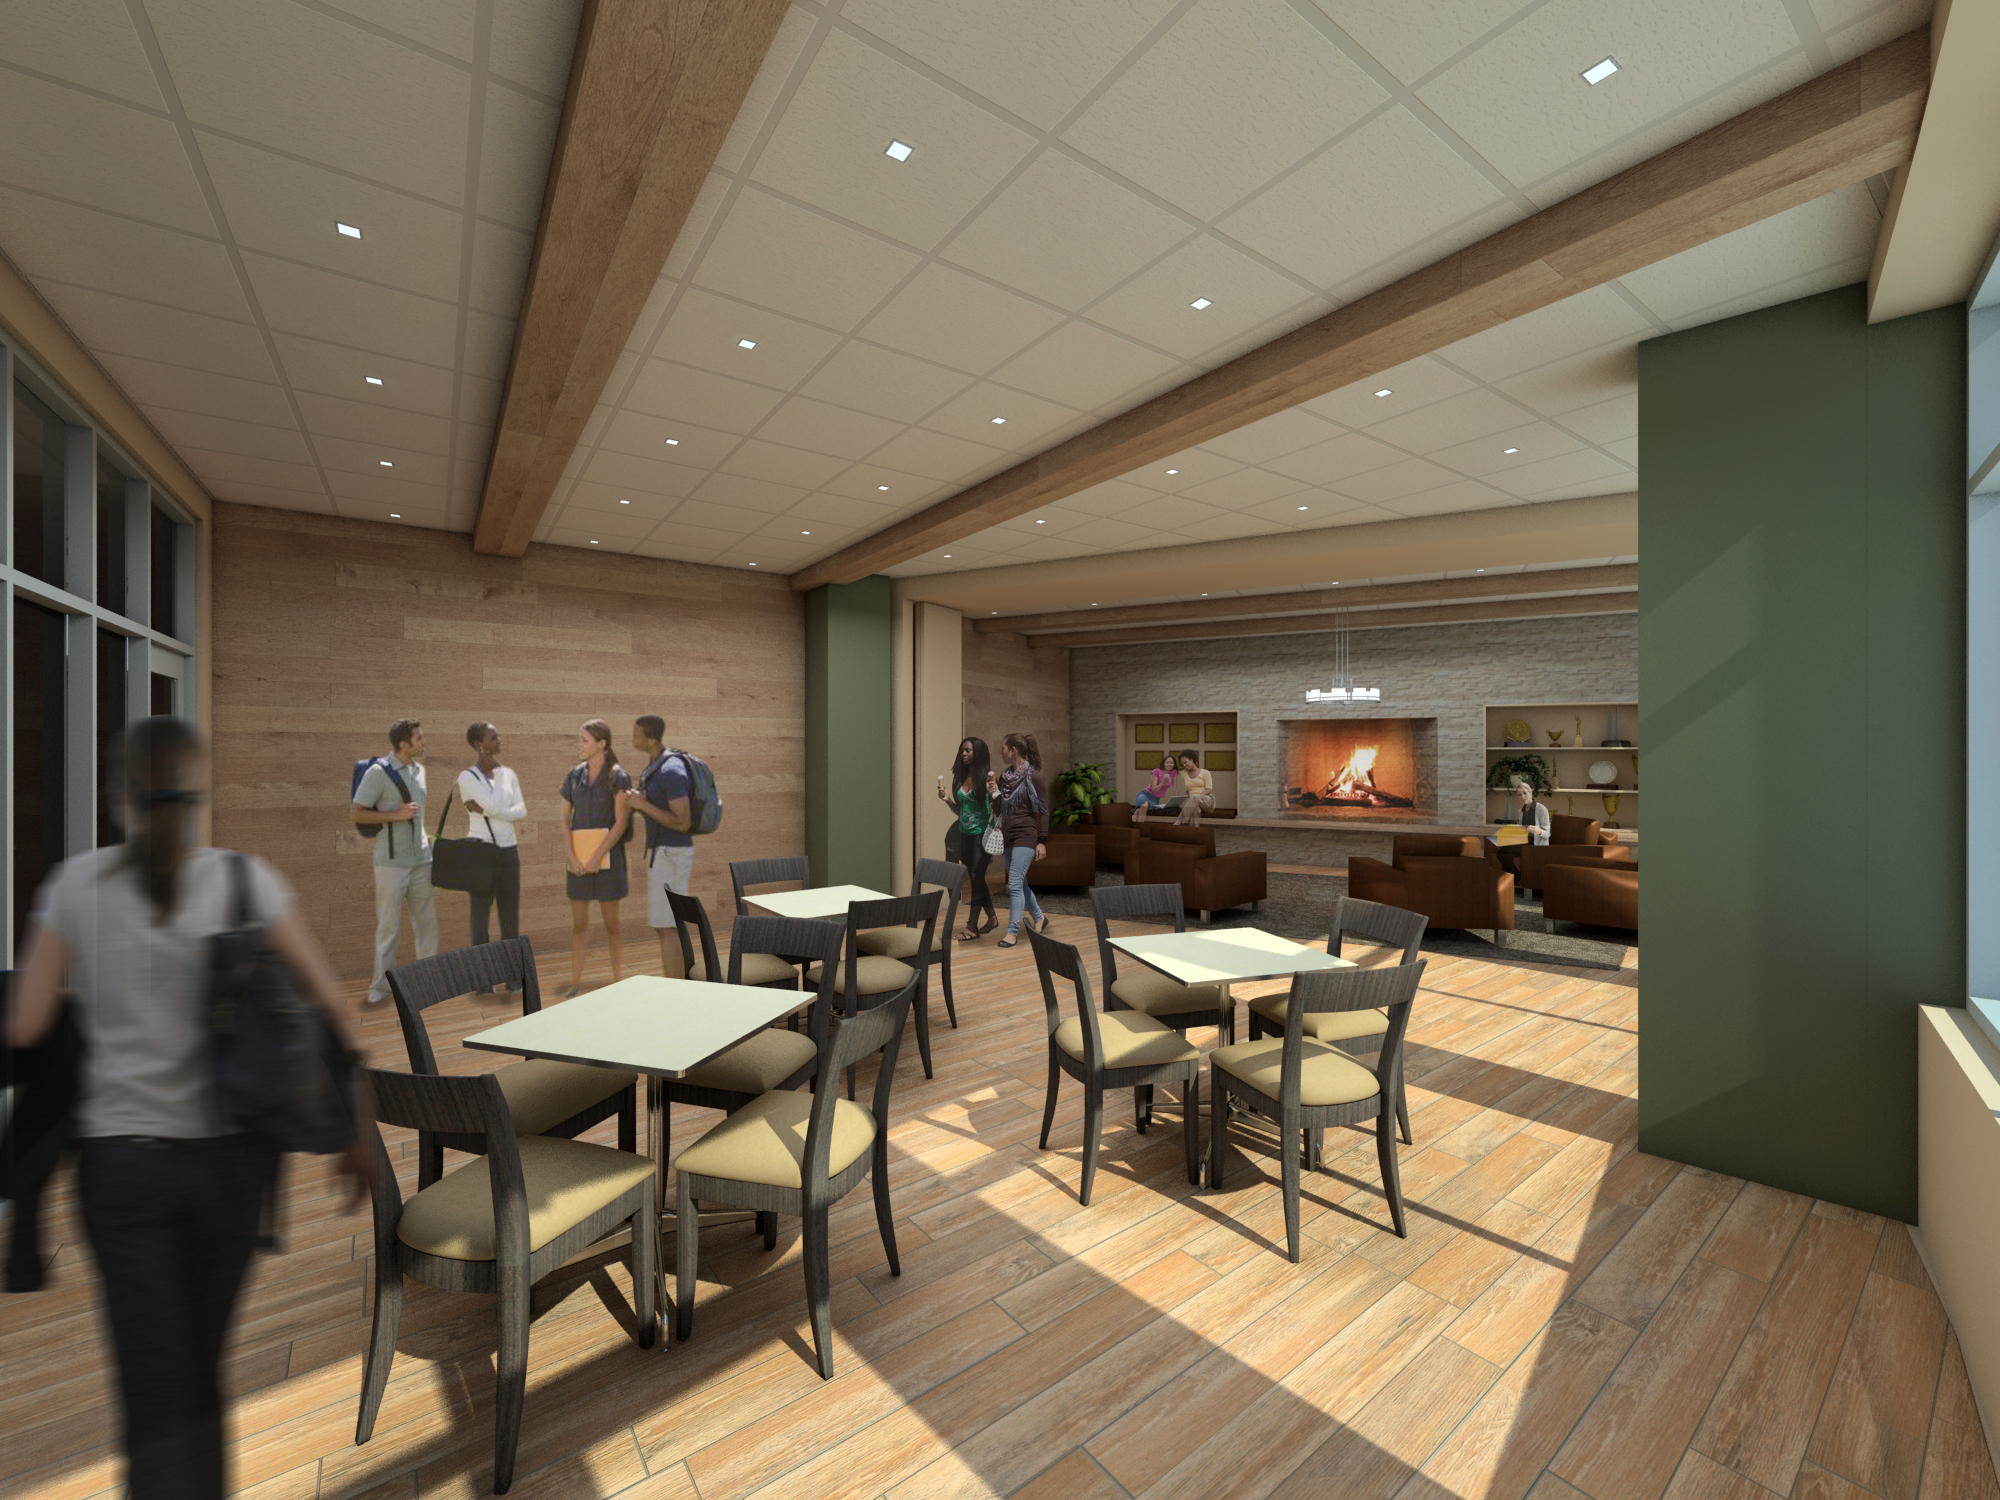 The Interior Designs Will Preserve Iconic Spaces Such As The Wisconsin  Union Theater And Provide Historic Continuity Throughout The Renovated  Portion Of The ...